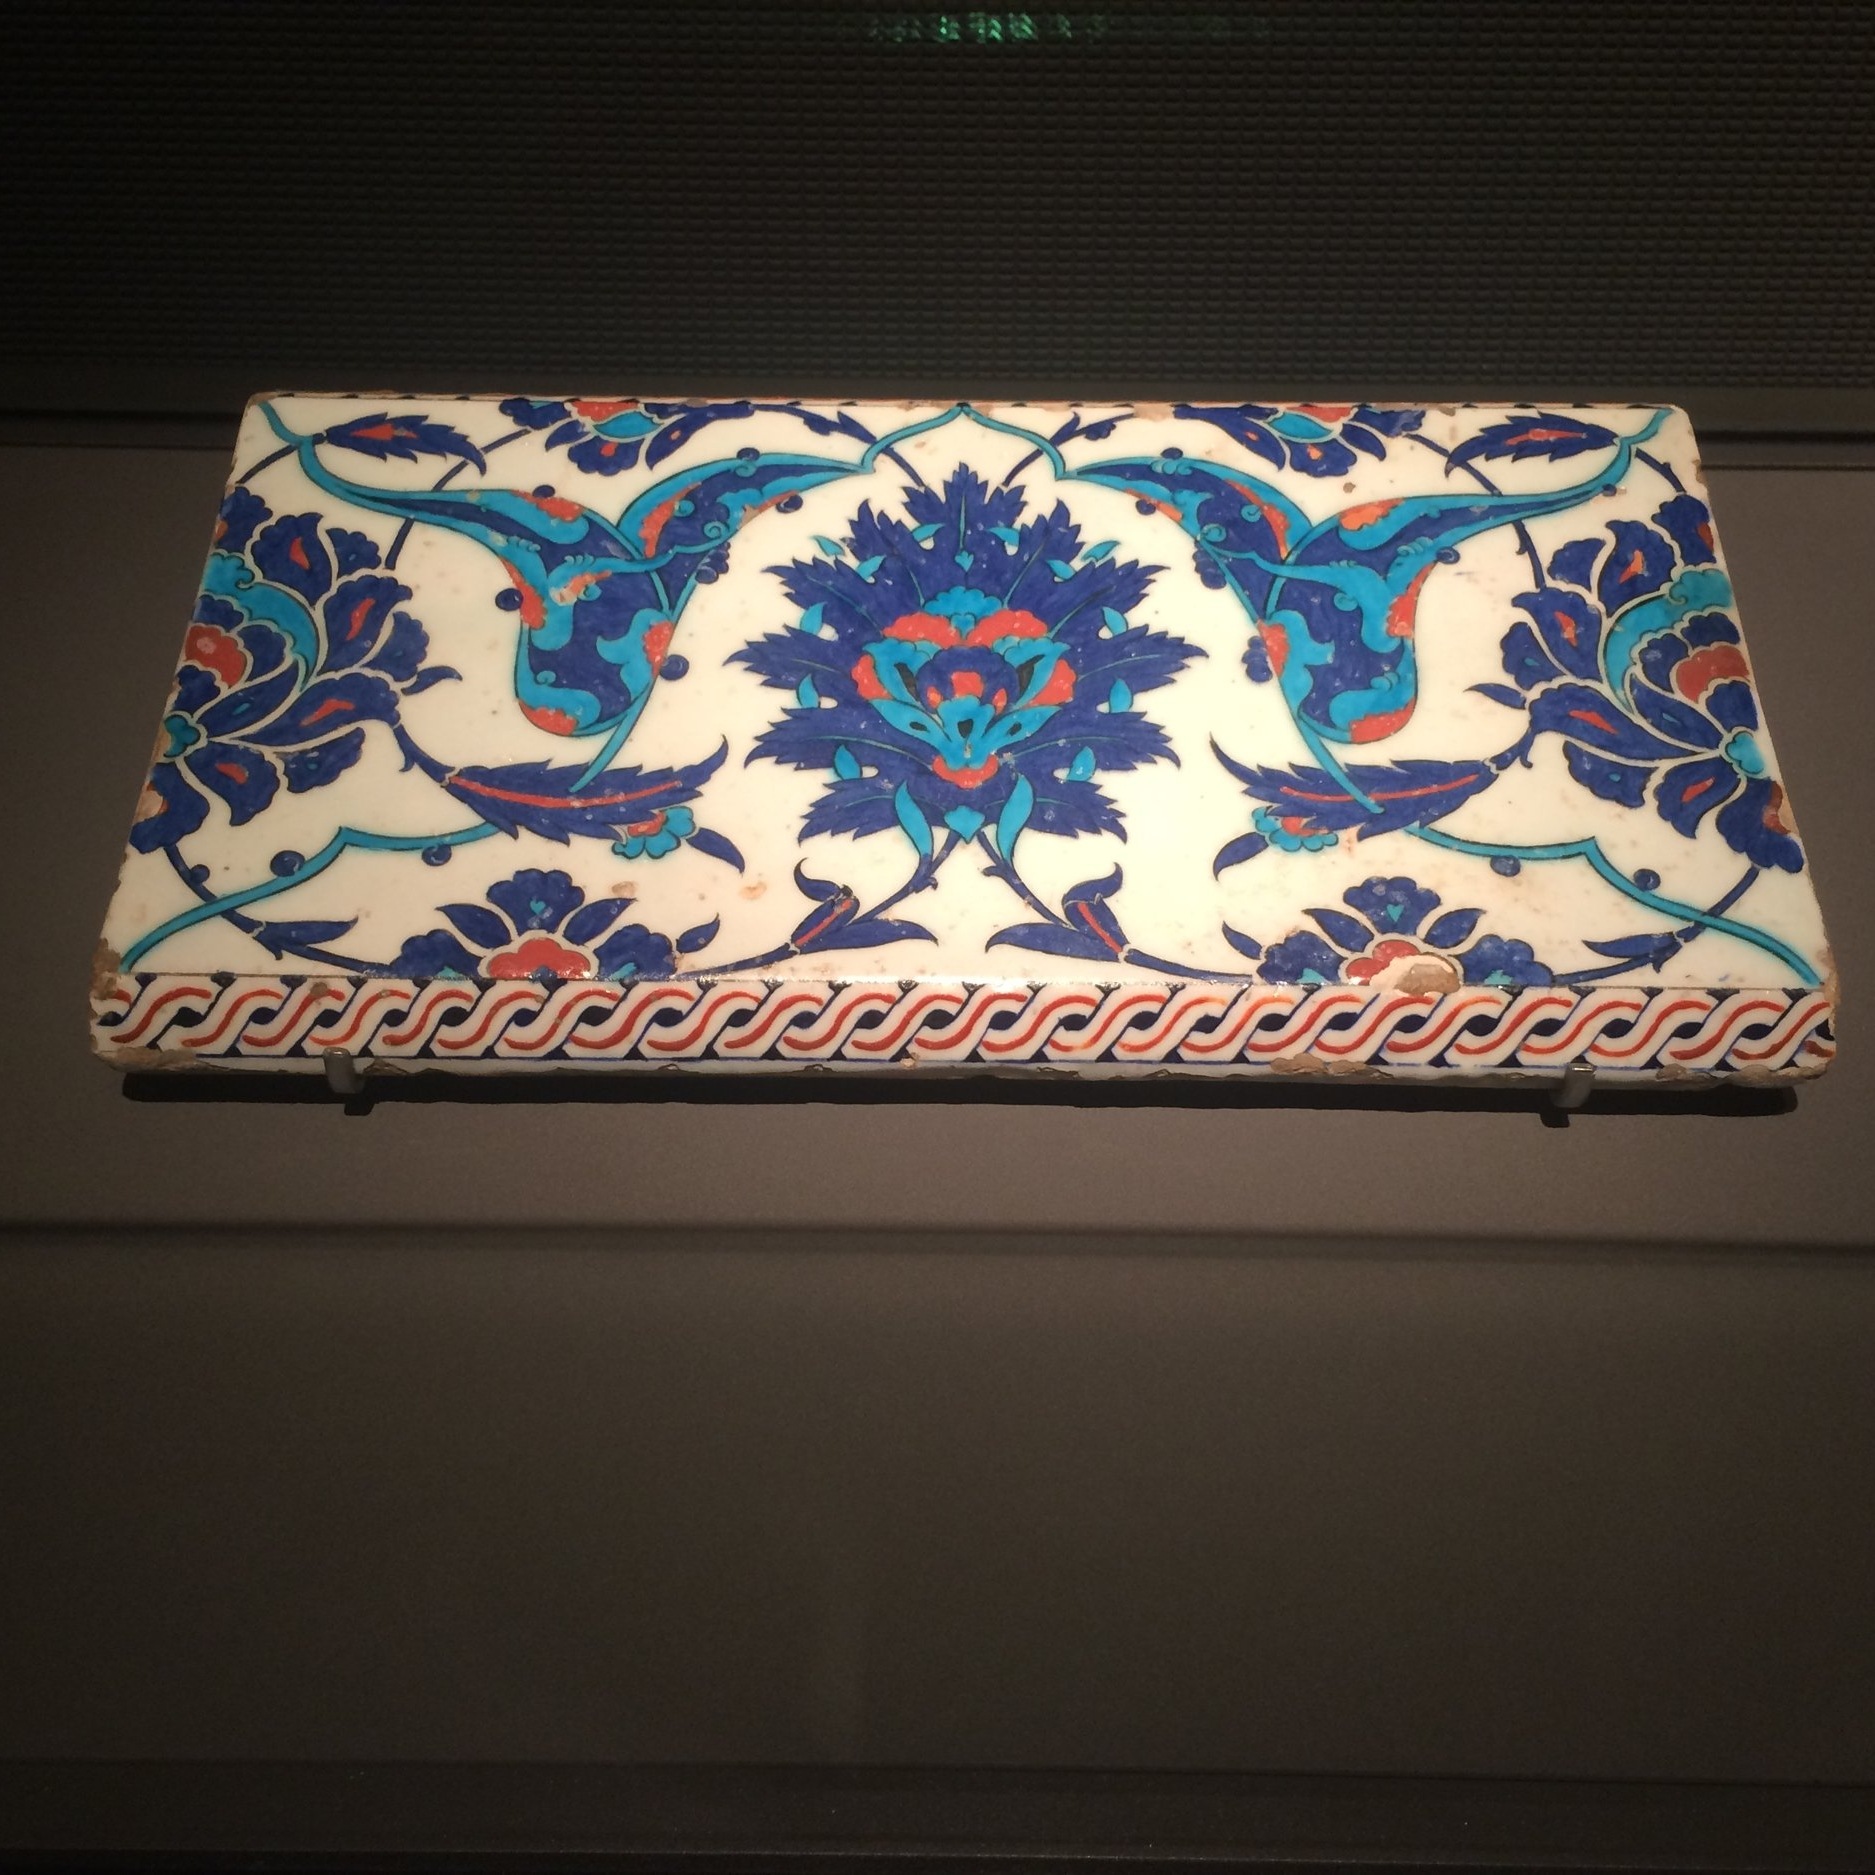 Gorgeous Turkish tiles that I want to replicate in my home.